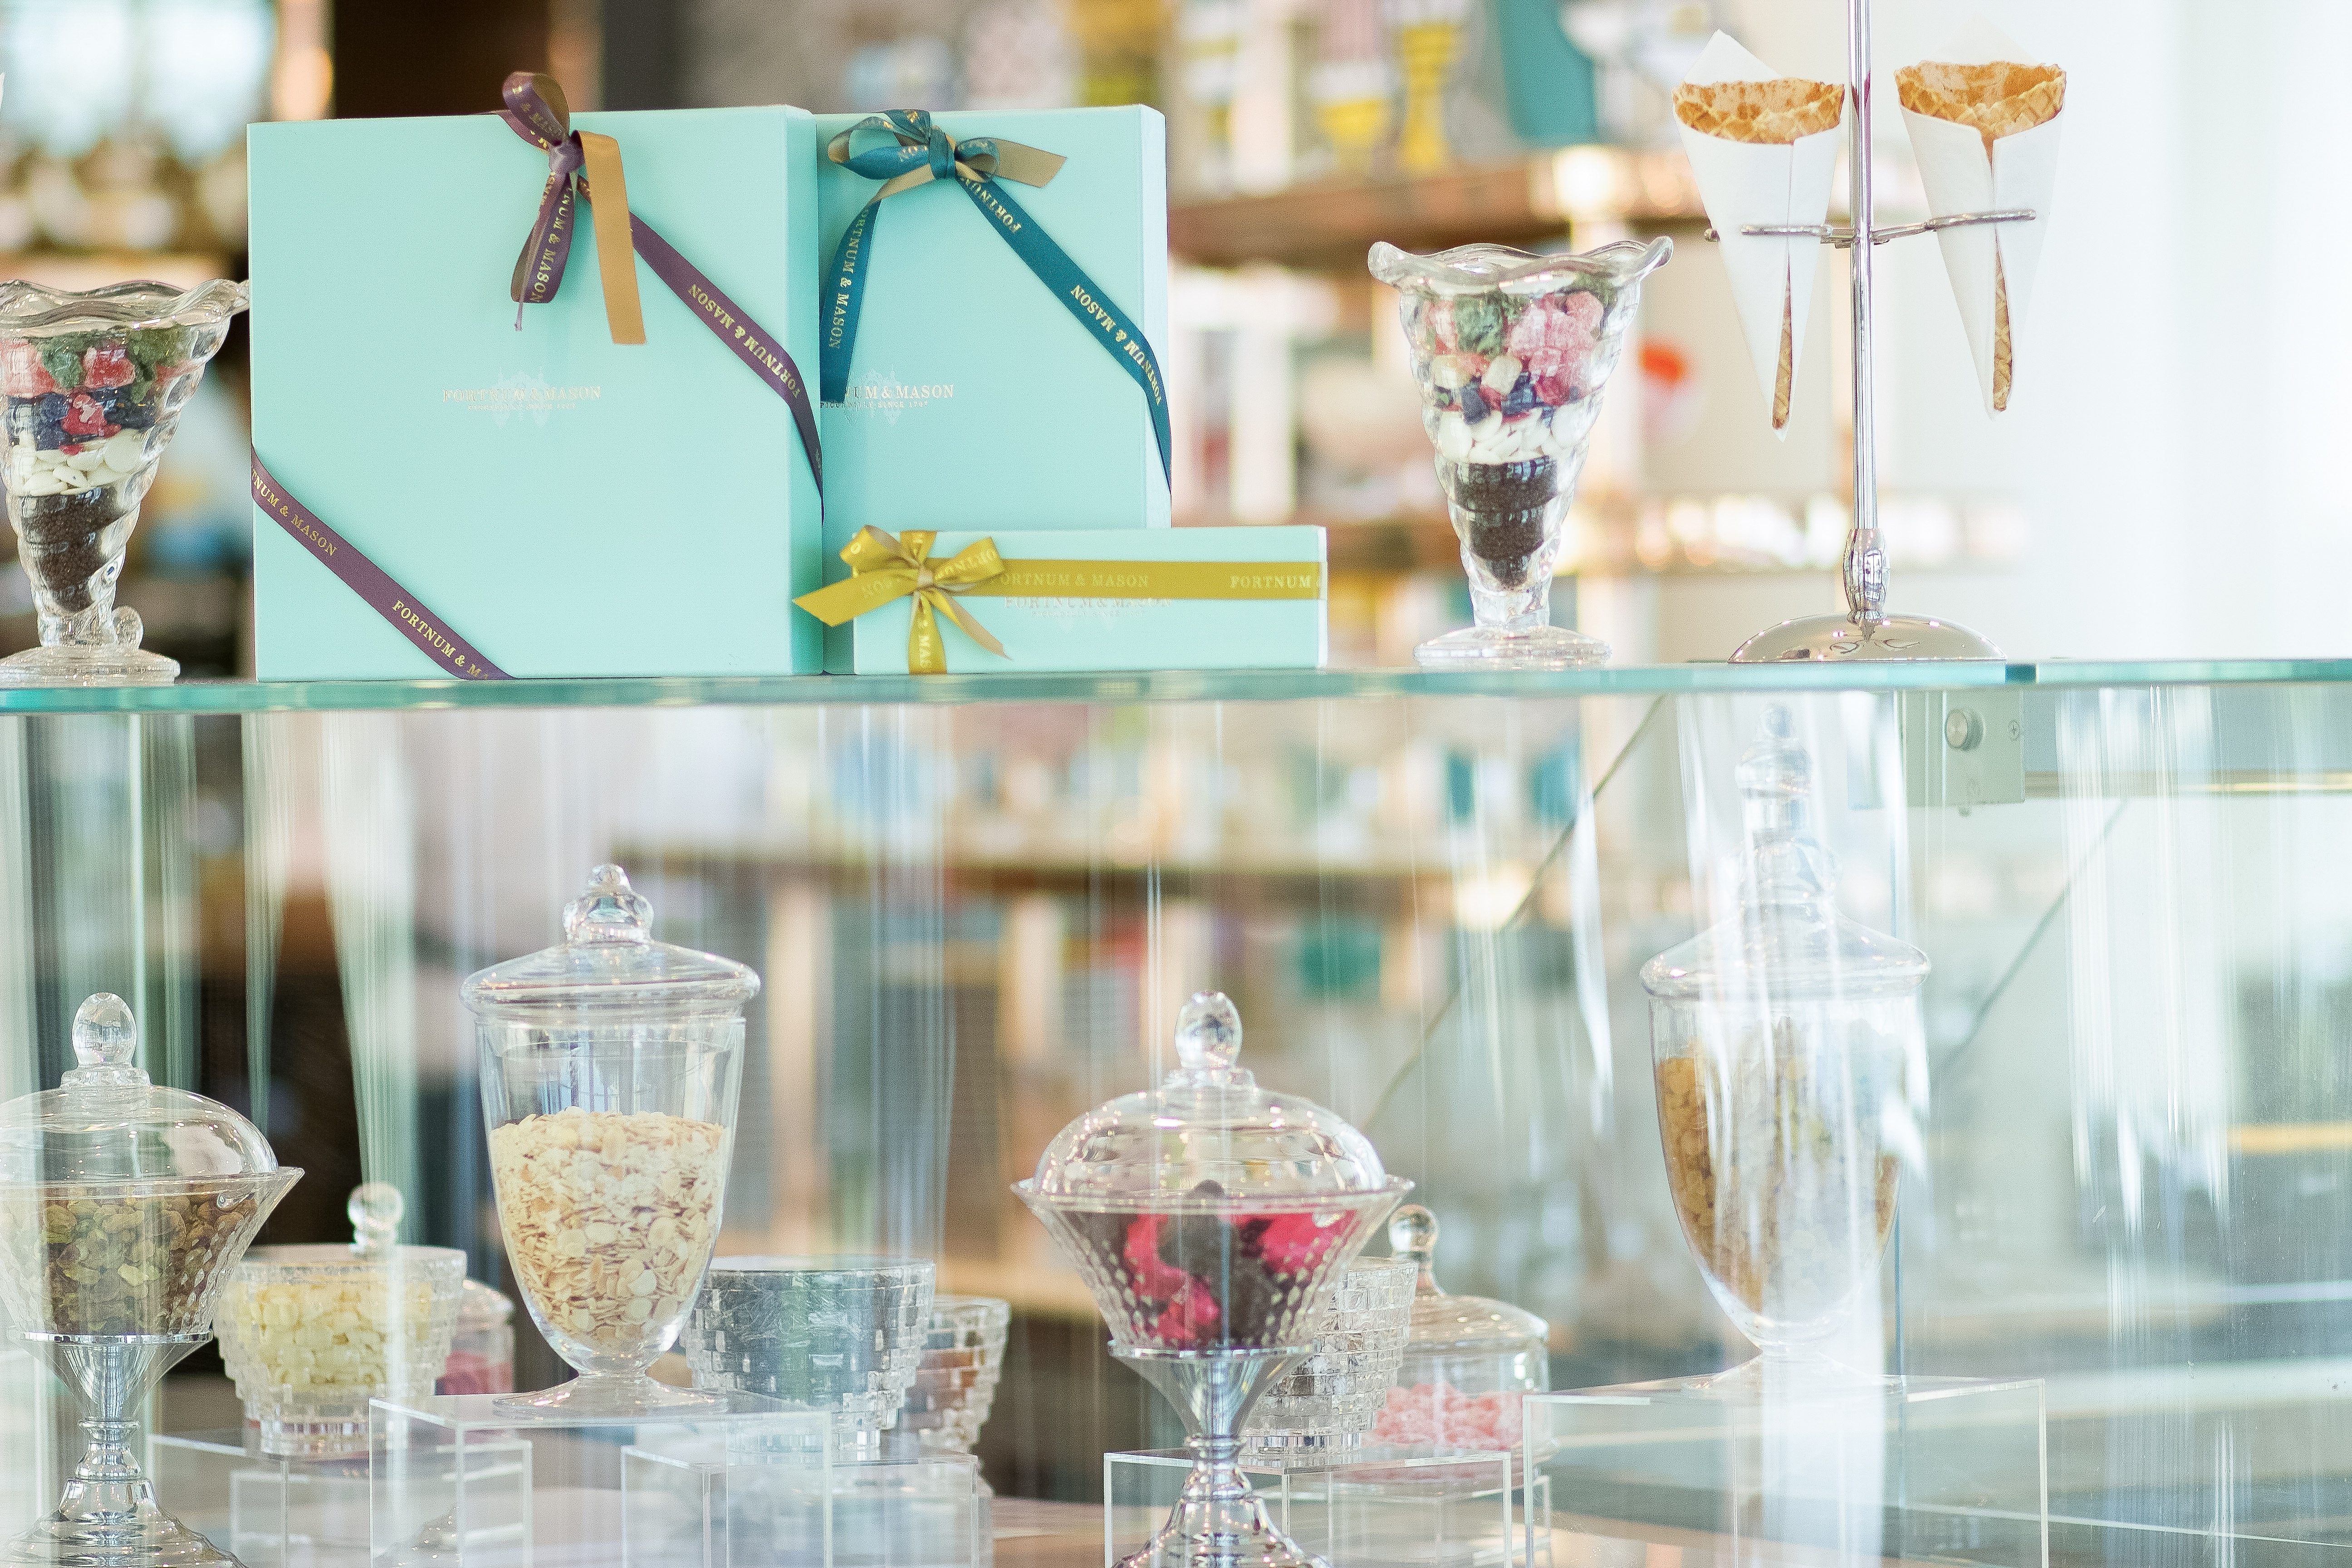 The Parlour at Fortnum & Mason Dubai